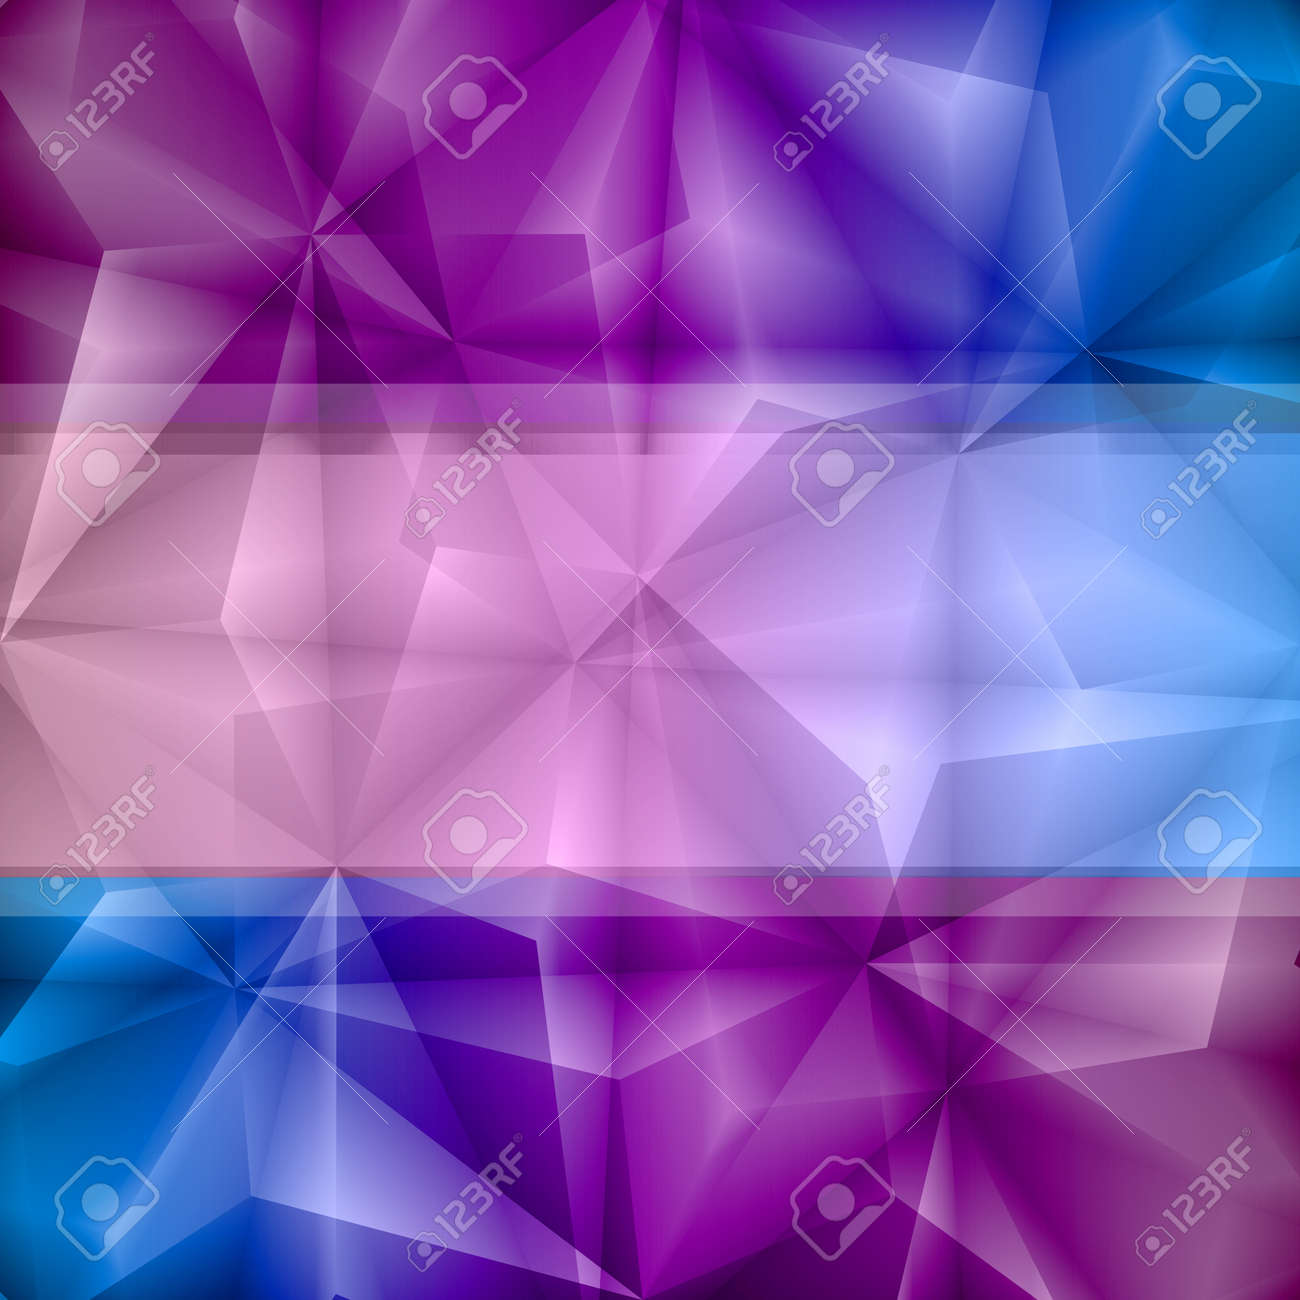 Background image transparency - Violet Blue Abstract Background Transparency Was Used Stock Vector 57961527